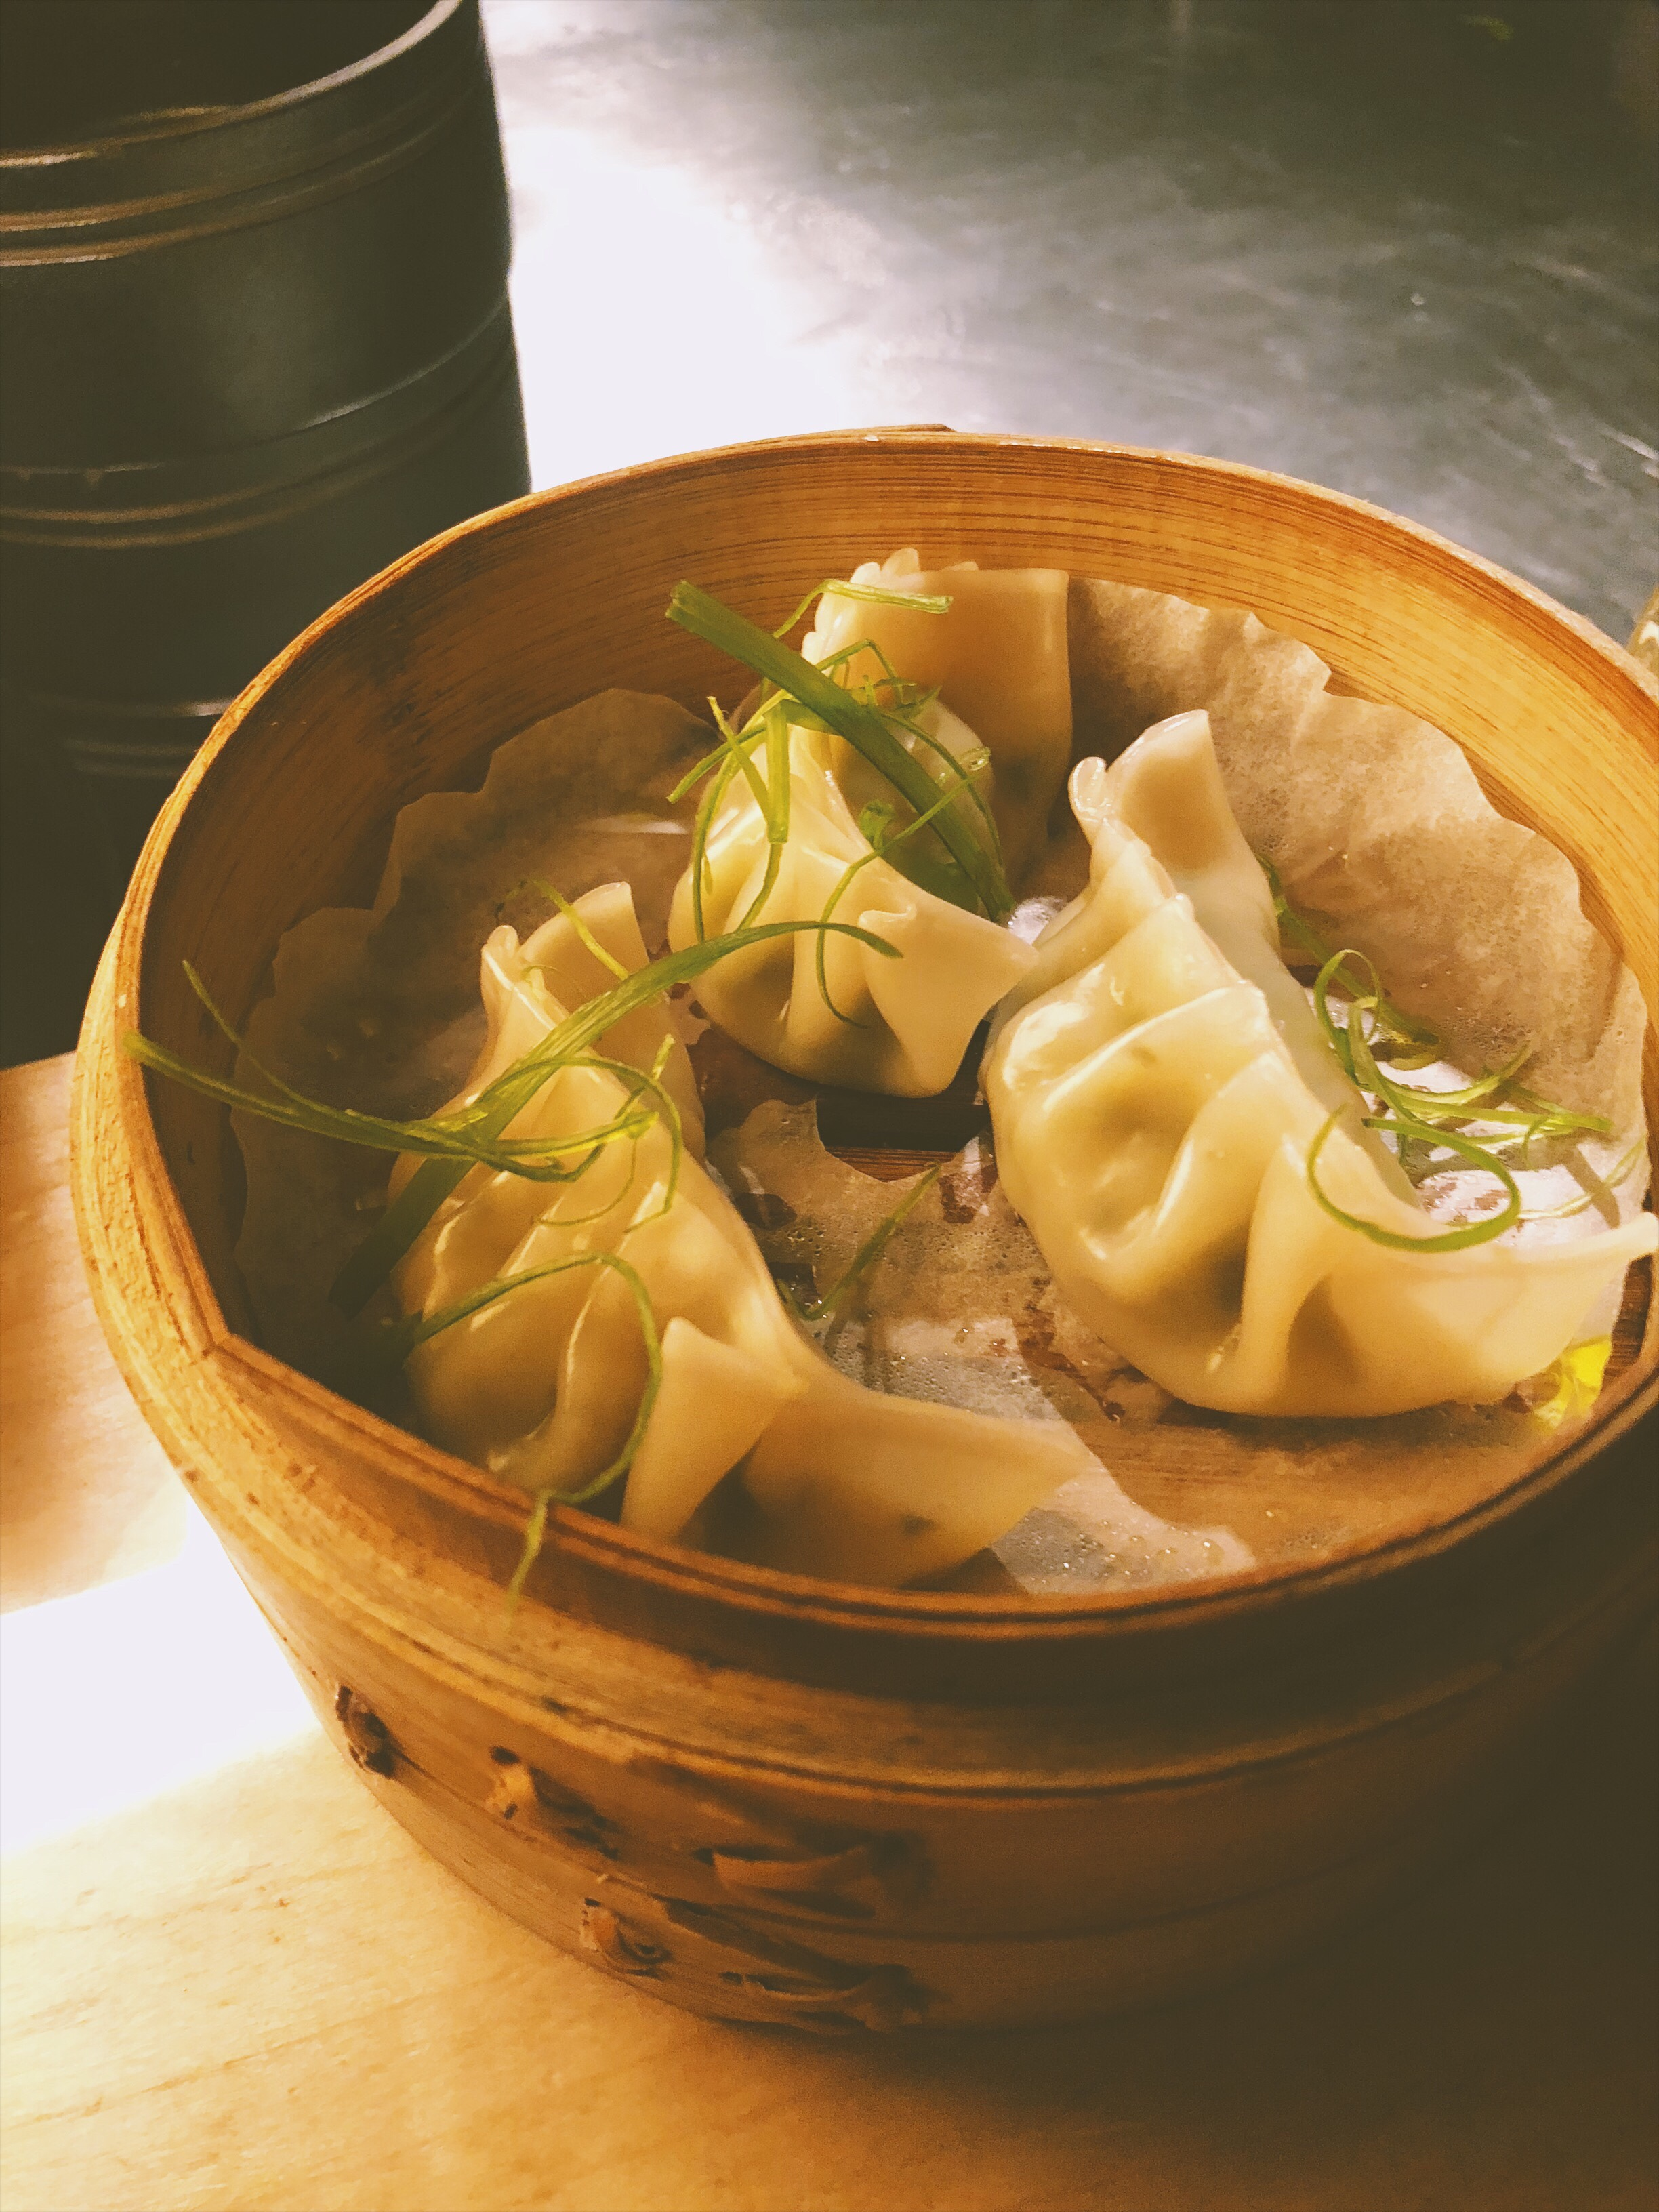 Shrimp and pea shoot dumplings